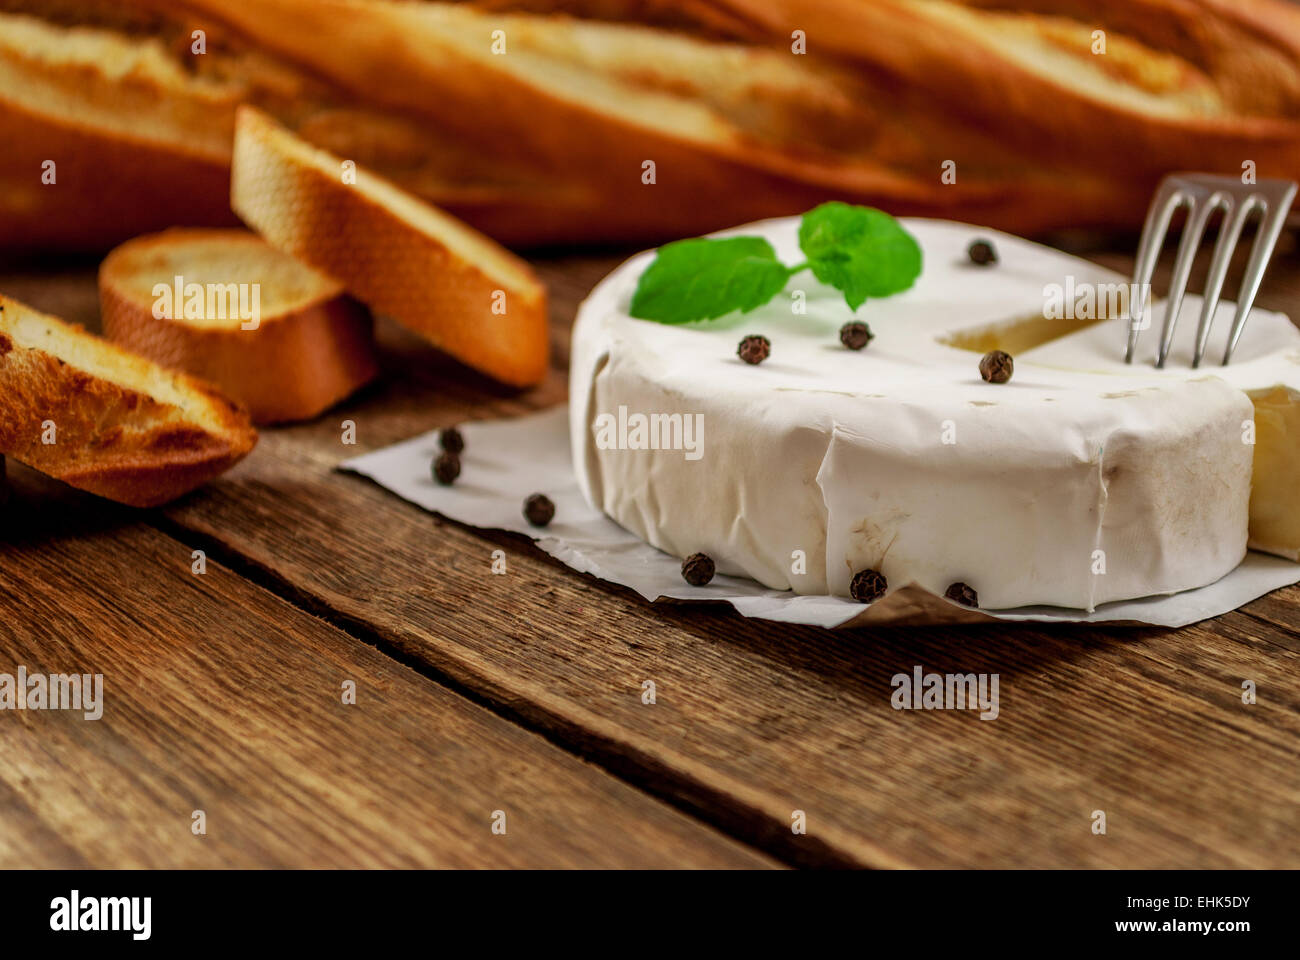 French traditional camembert cheese with baguette on wood table - Stock Image